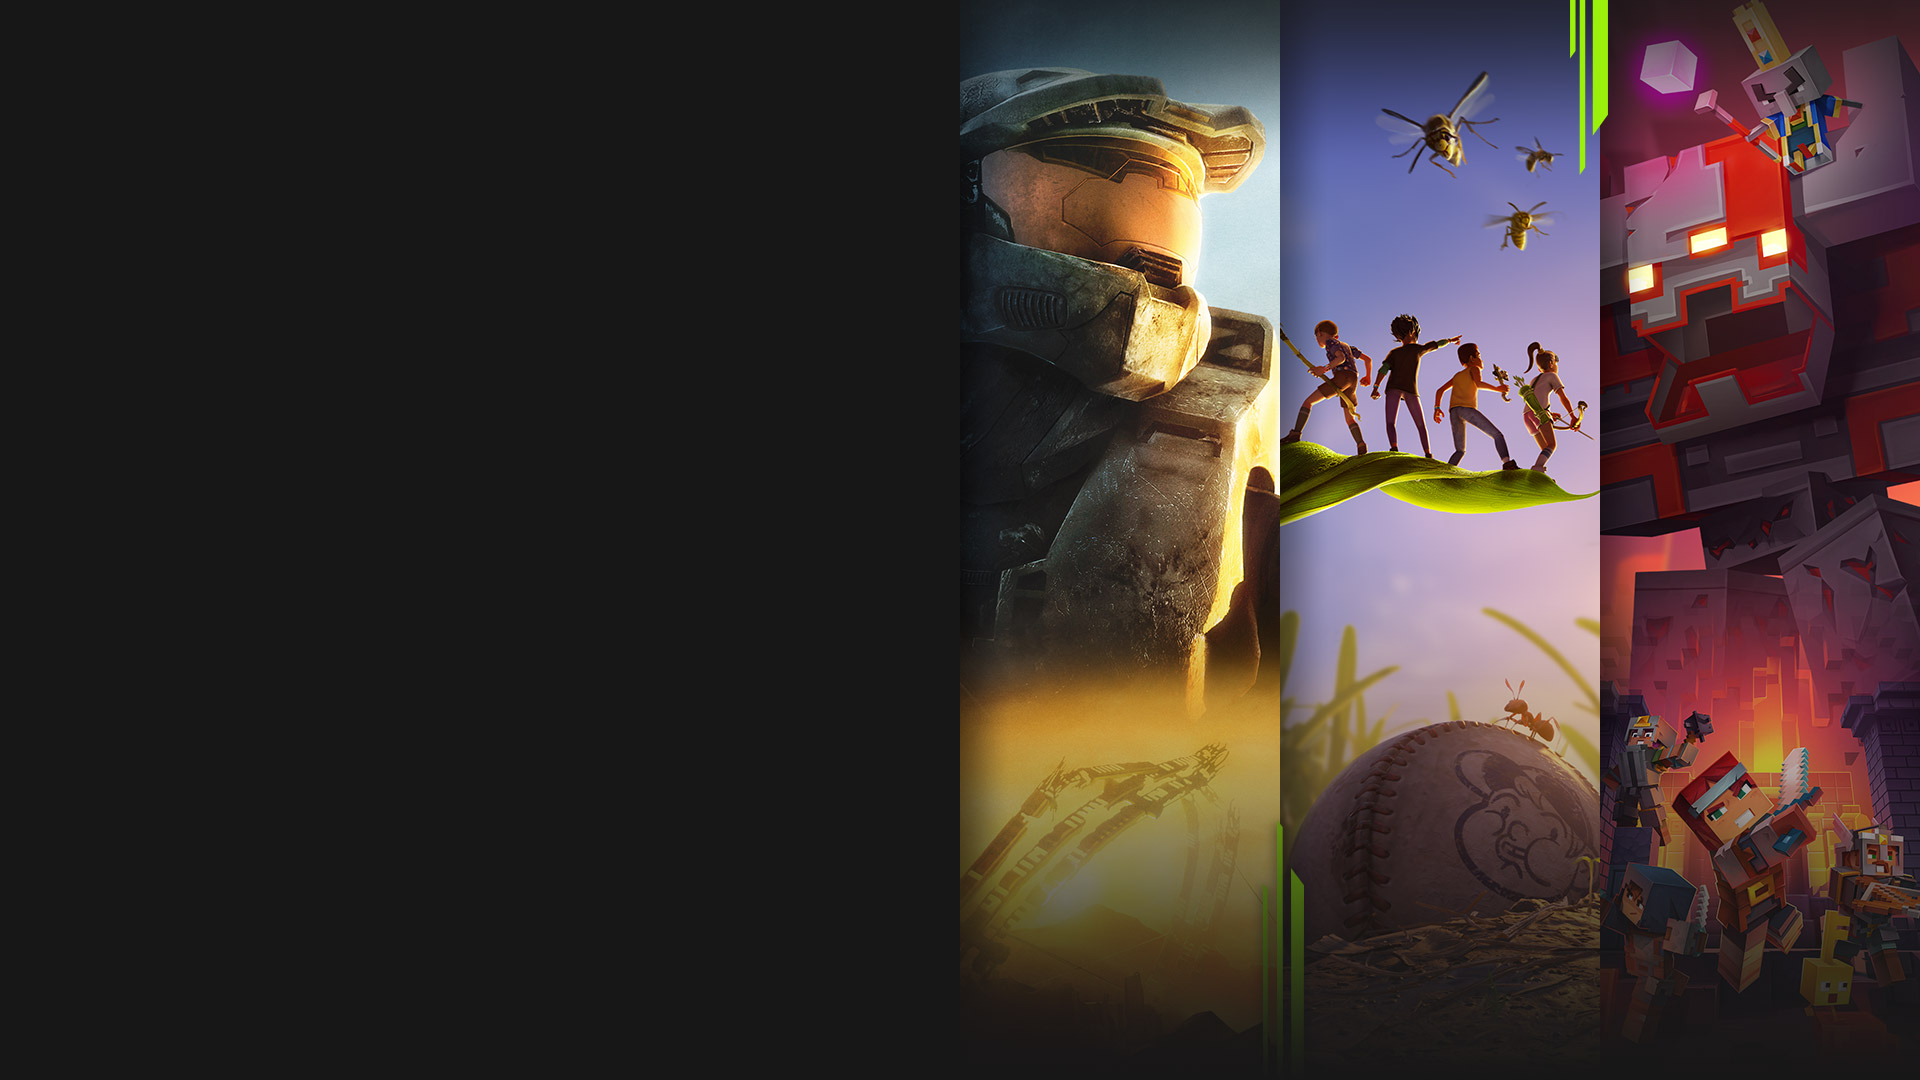 Game art from multiple games available with Xbox Game Pass including Halo 3, Grounded, Minecraft Dungeons, and Forza Horizon 4.